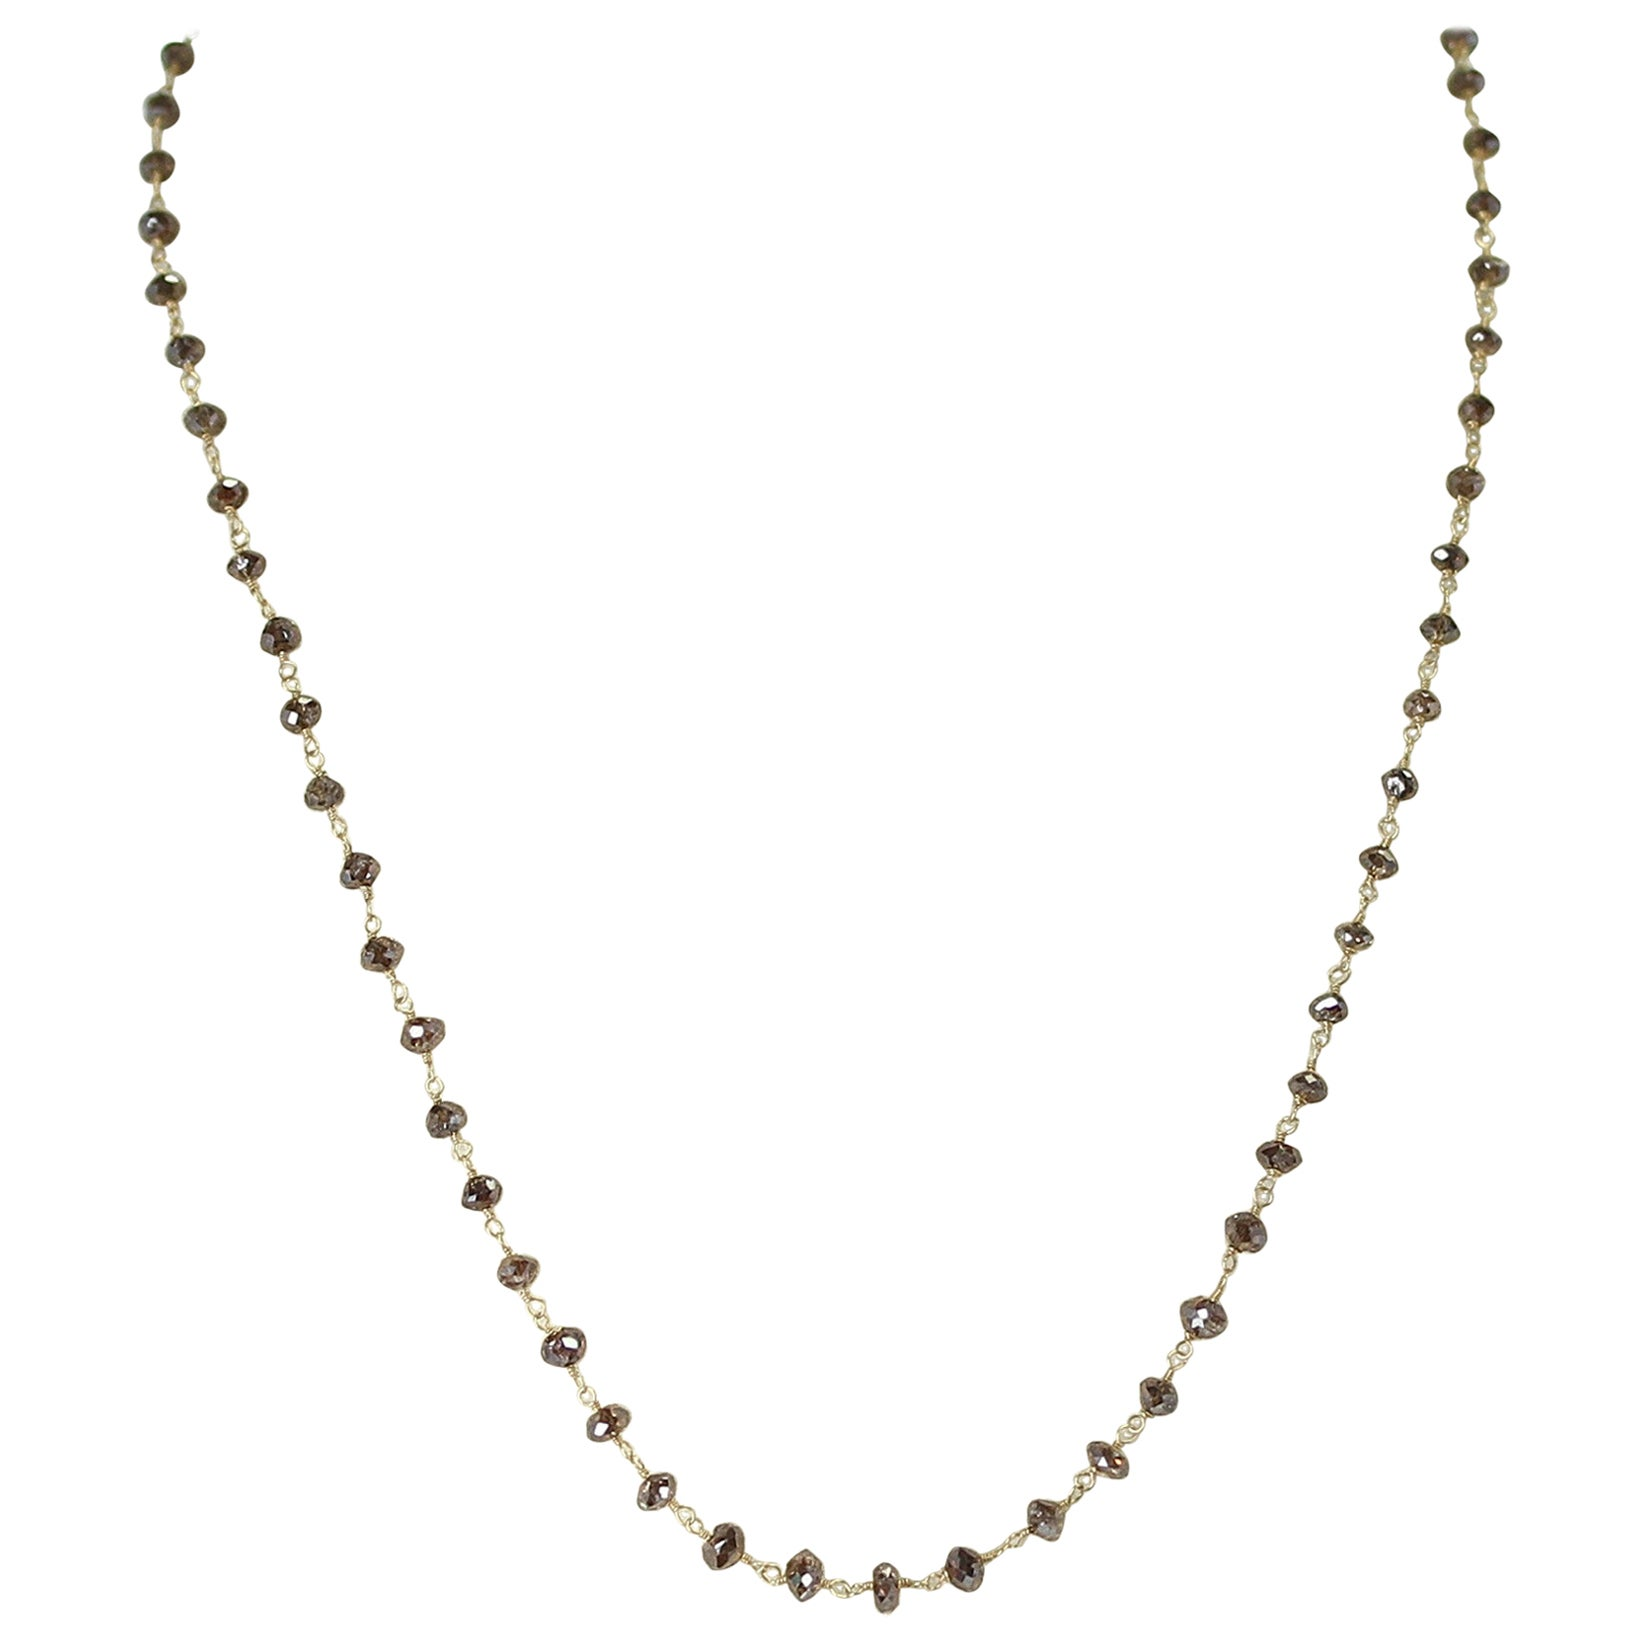 Genuine Champagne Diamond Beads Wire-Wrapped Necklace, 18 Karat Yellow Gold